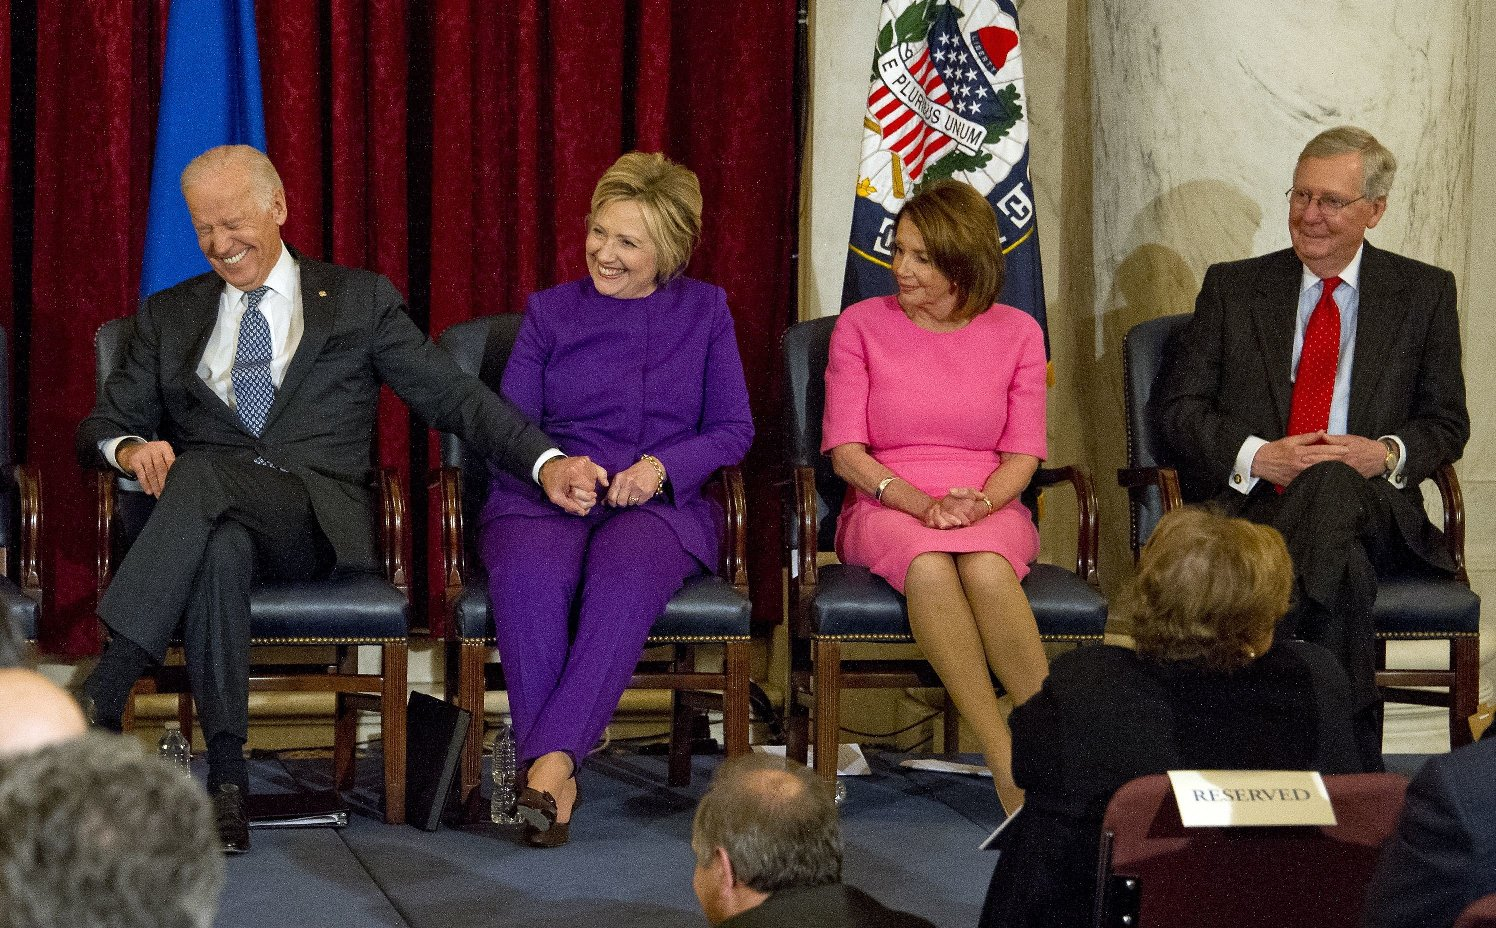 /Joe Biden, Hillary Clinton, Nancy Pelosi, Mitch McConnell Senator Harry Reid portrait unveiling, Washington DC, USA - 08 Dec 2016 Ceremony where the official portrait of US Senate Minority Leader Harry Reid (Democrat of Nevada) is to be unveiled in the Kennedy Caucus Room on Capitol Hill, Image: 307937996, License: Rights-managed, Restrictions: , Model Release: no, Credit line: Profimedia, TEMP Rex Features